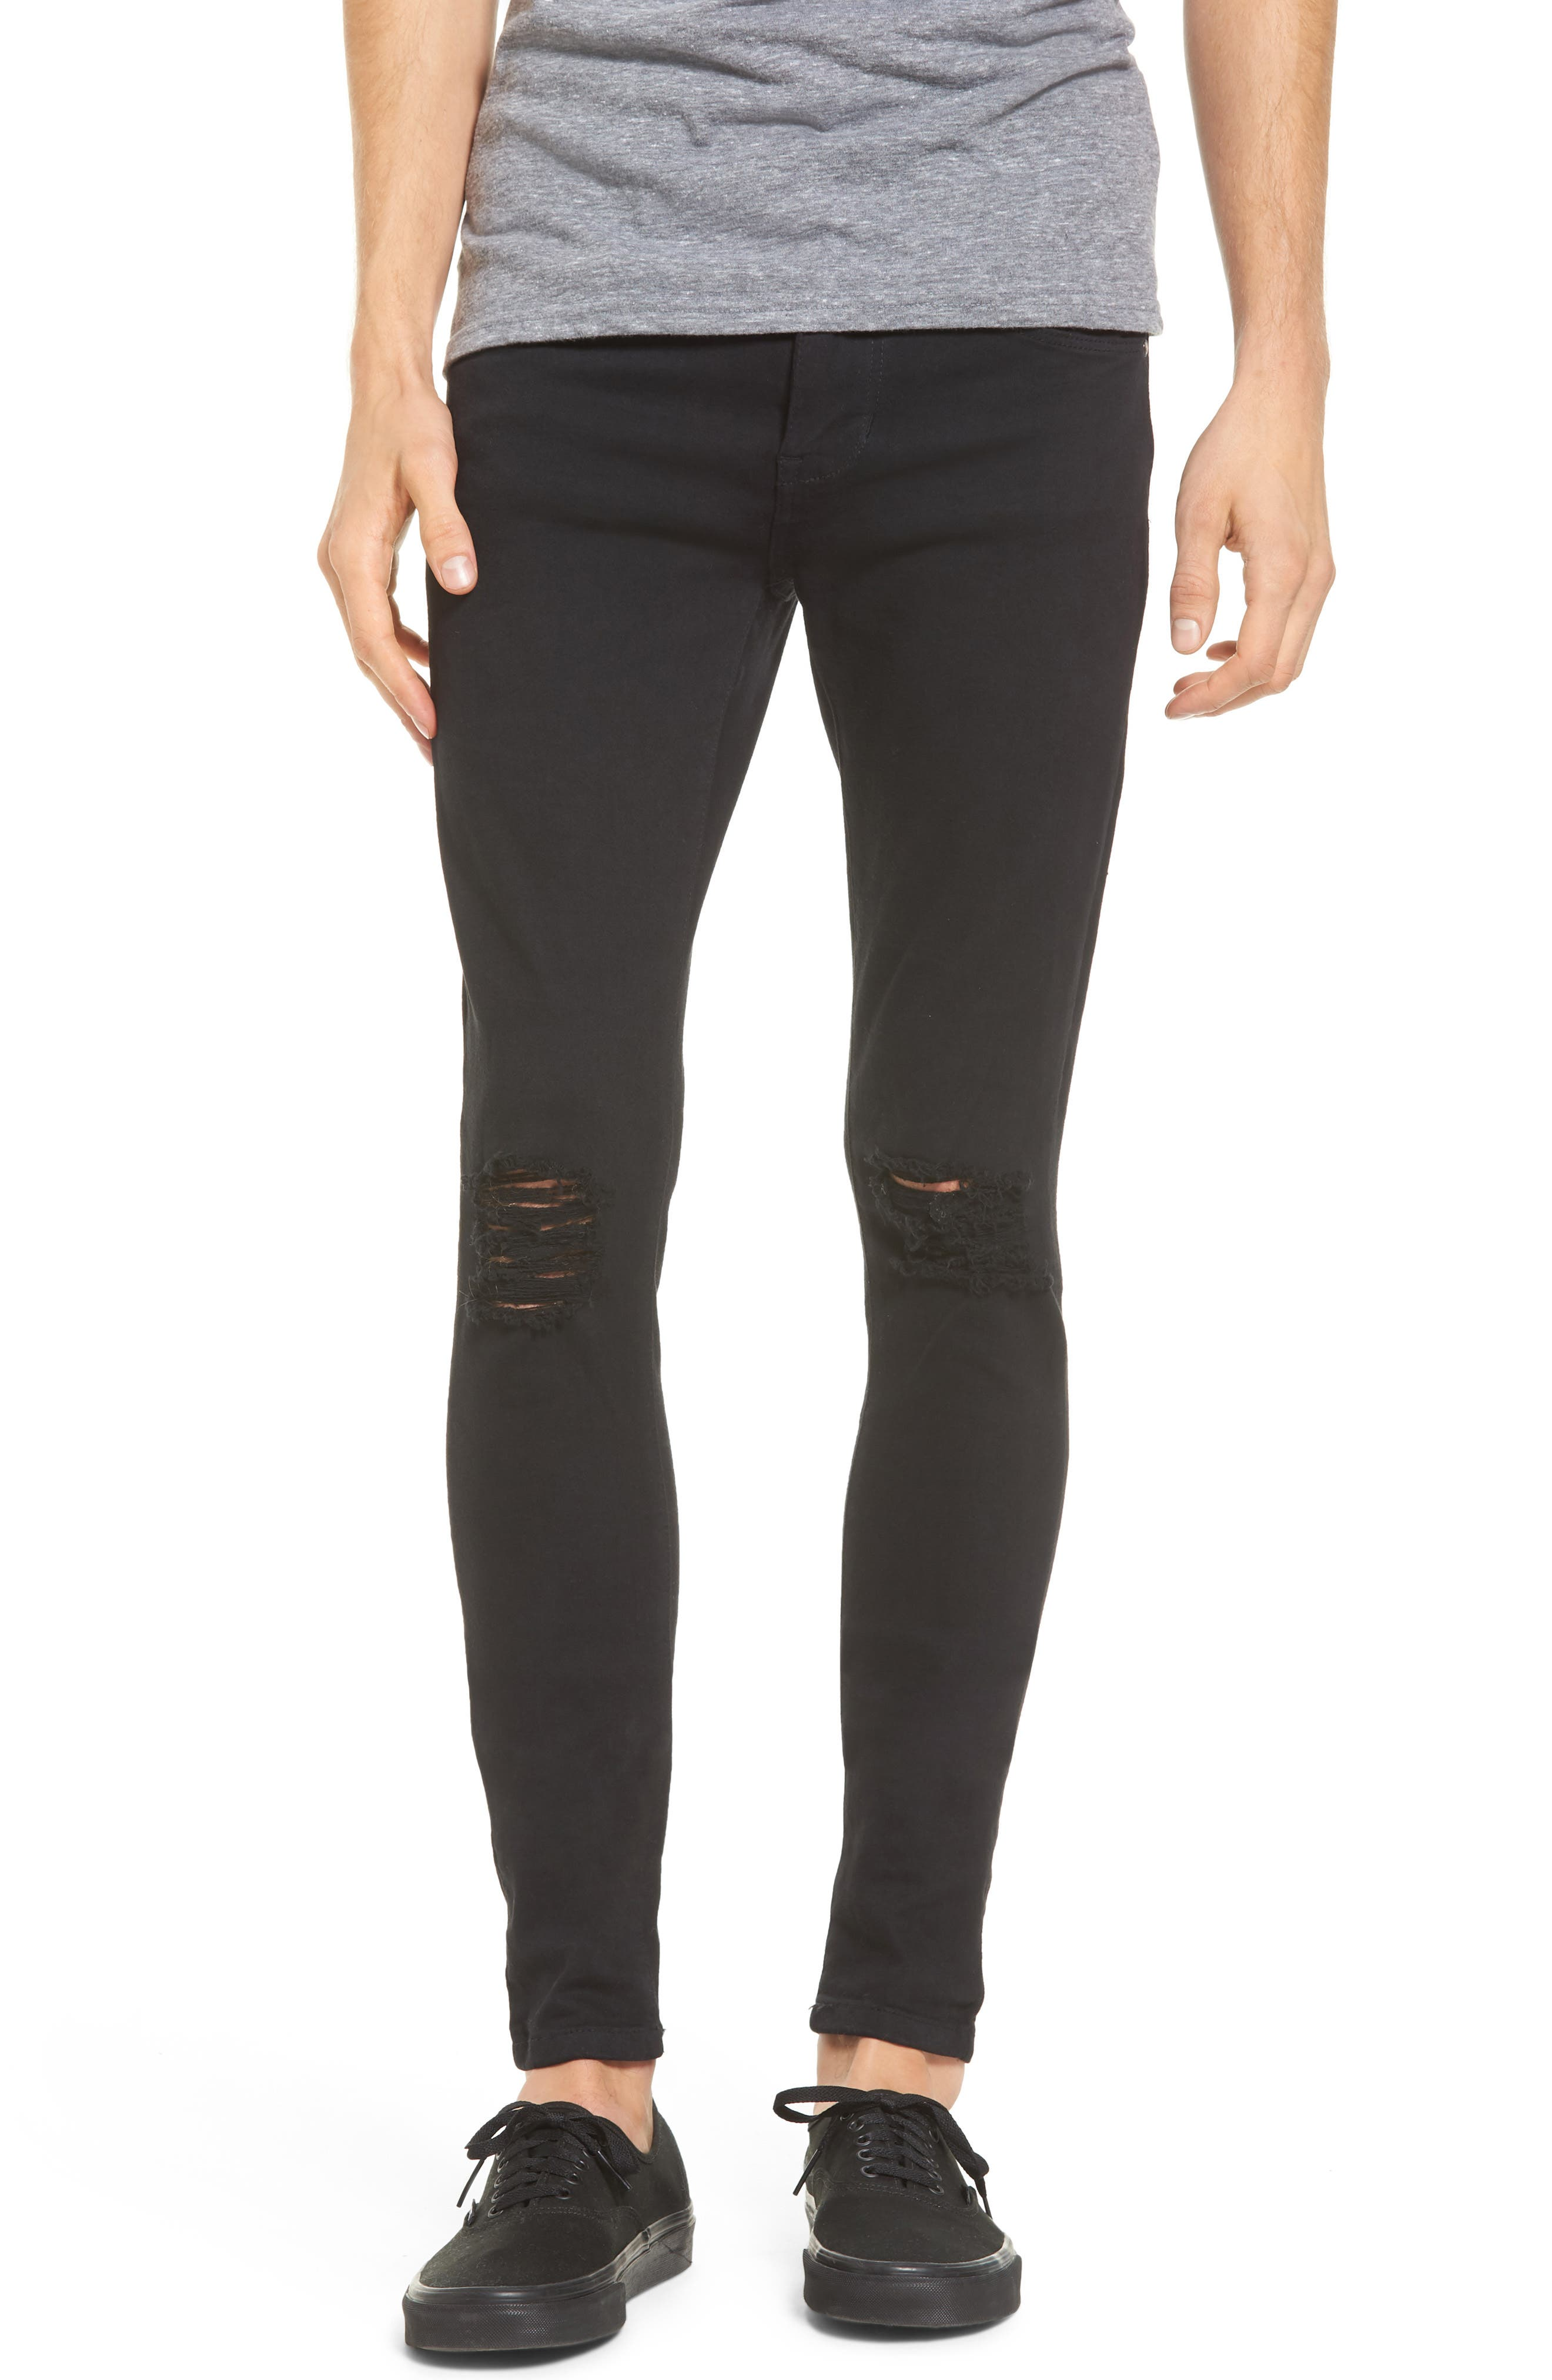 Leroy Slim Fit Jeans,                             Main thumbnail 1, color,                             Black Ripped Knees